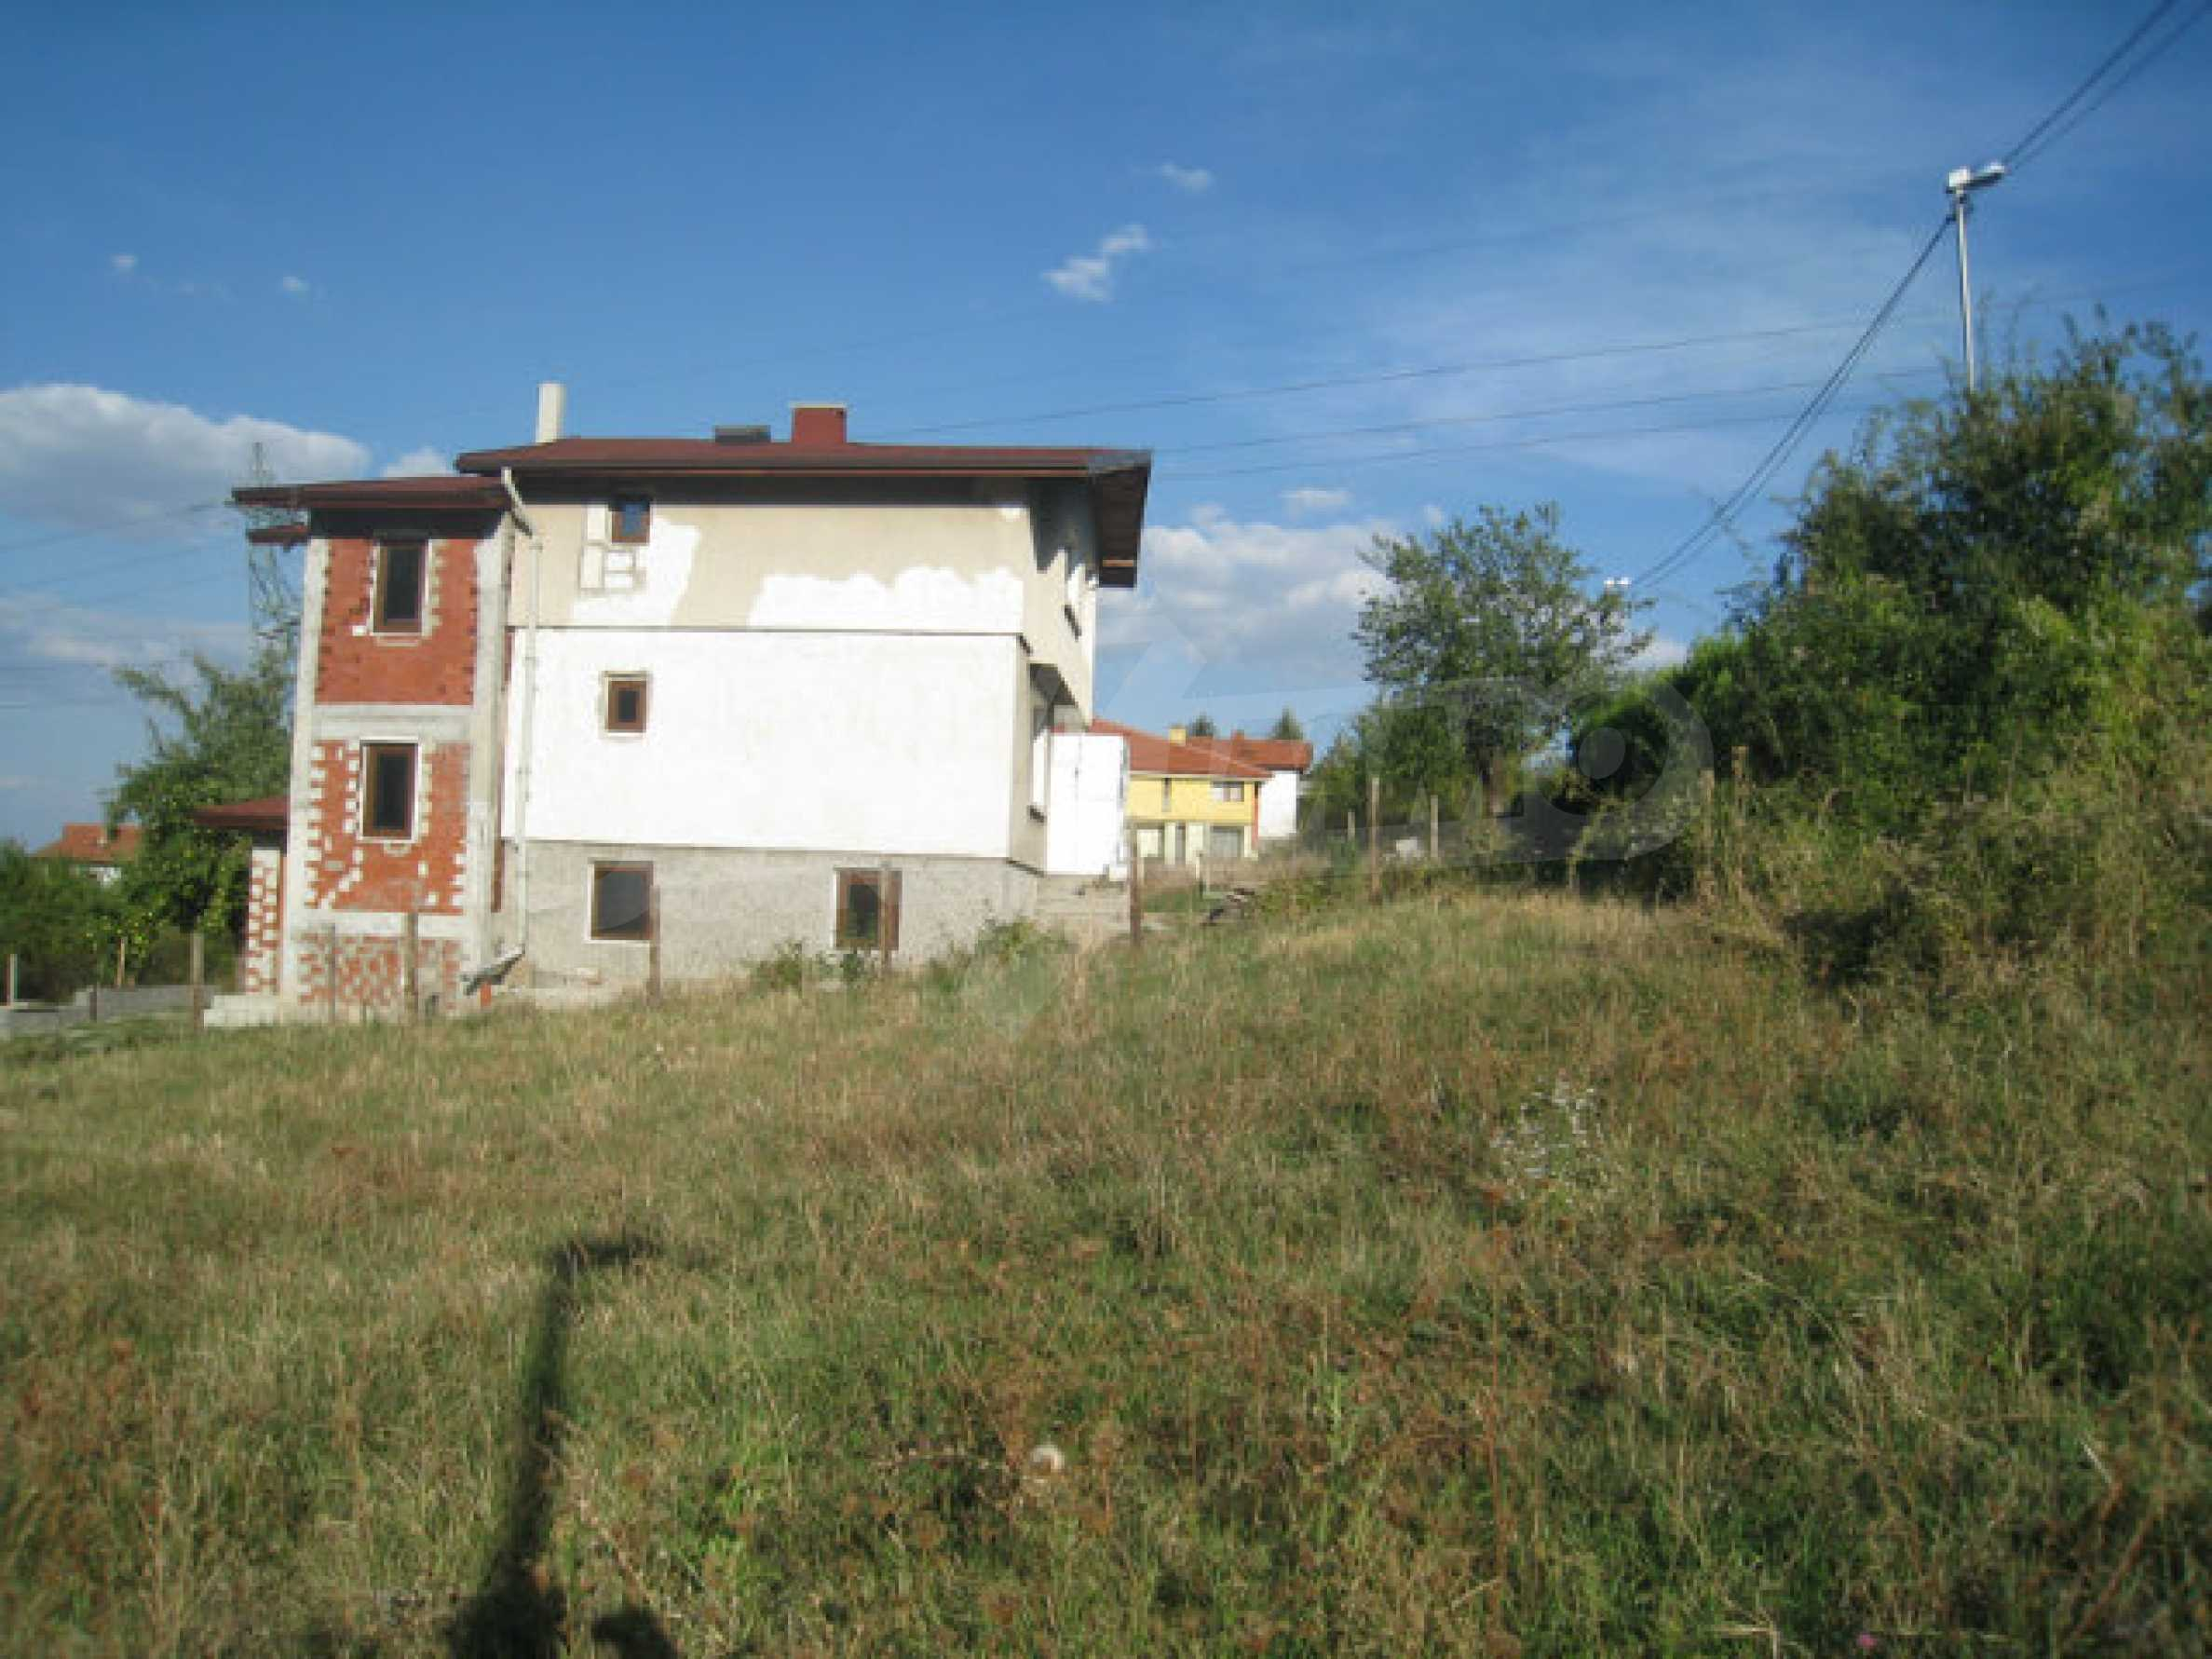 Regulated plot of land for rural private house or villa near Sofia 7